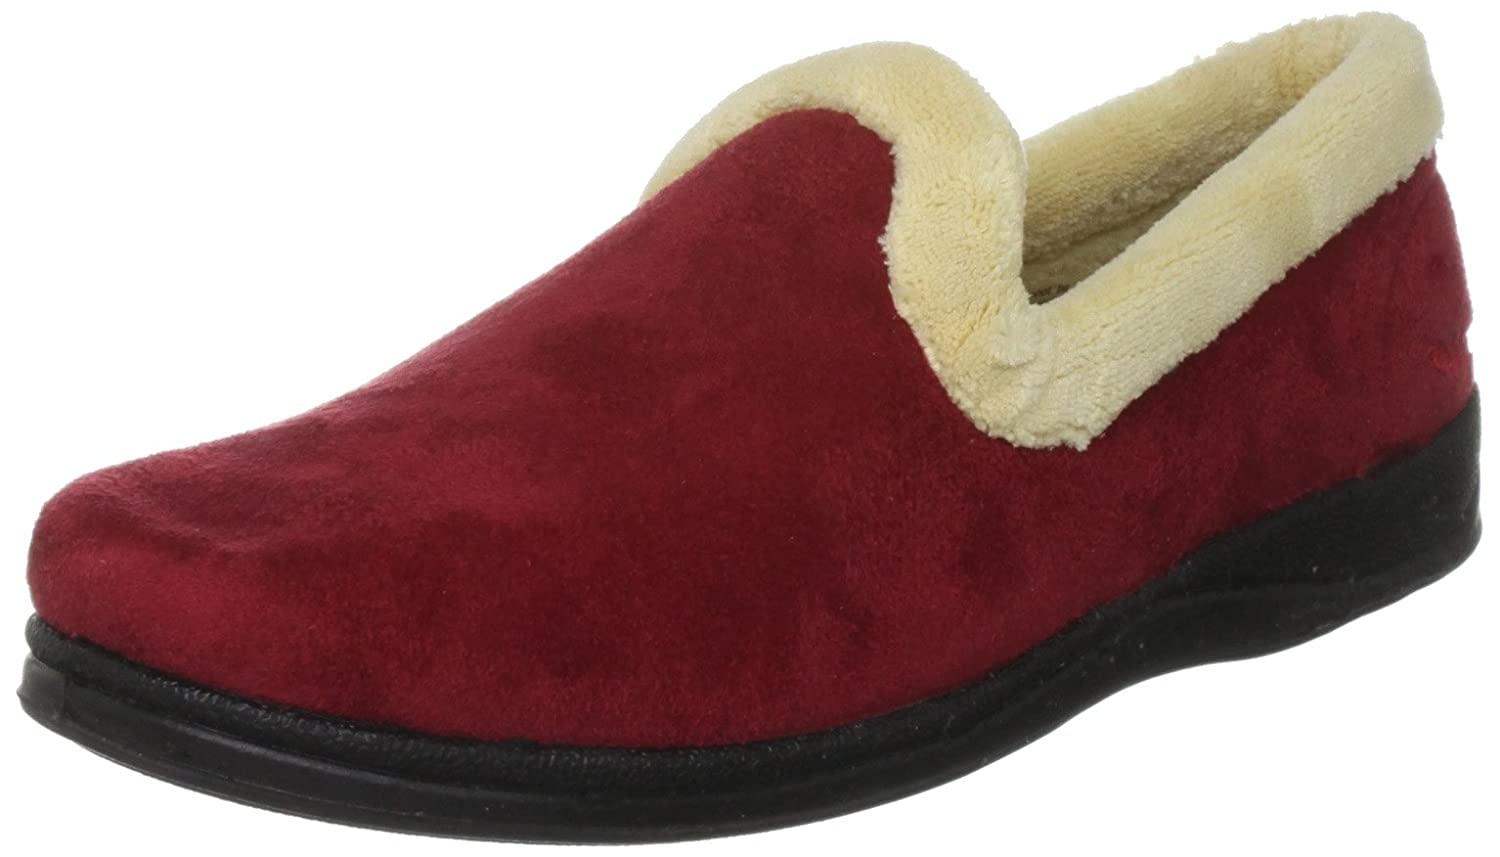 Padders Rouge Repose, Chaussons femme Rouge femme B0752NVPPX (Rouge-v.7) b4f1943 - reprogrammed.space